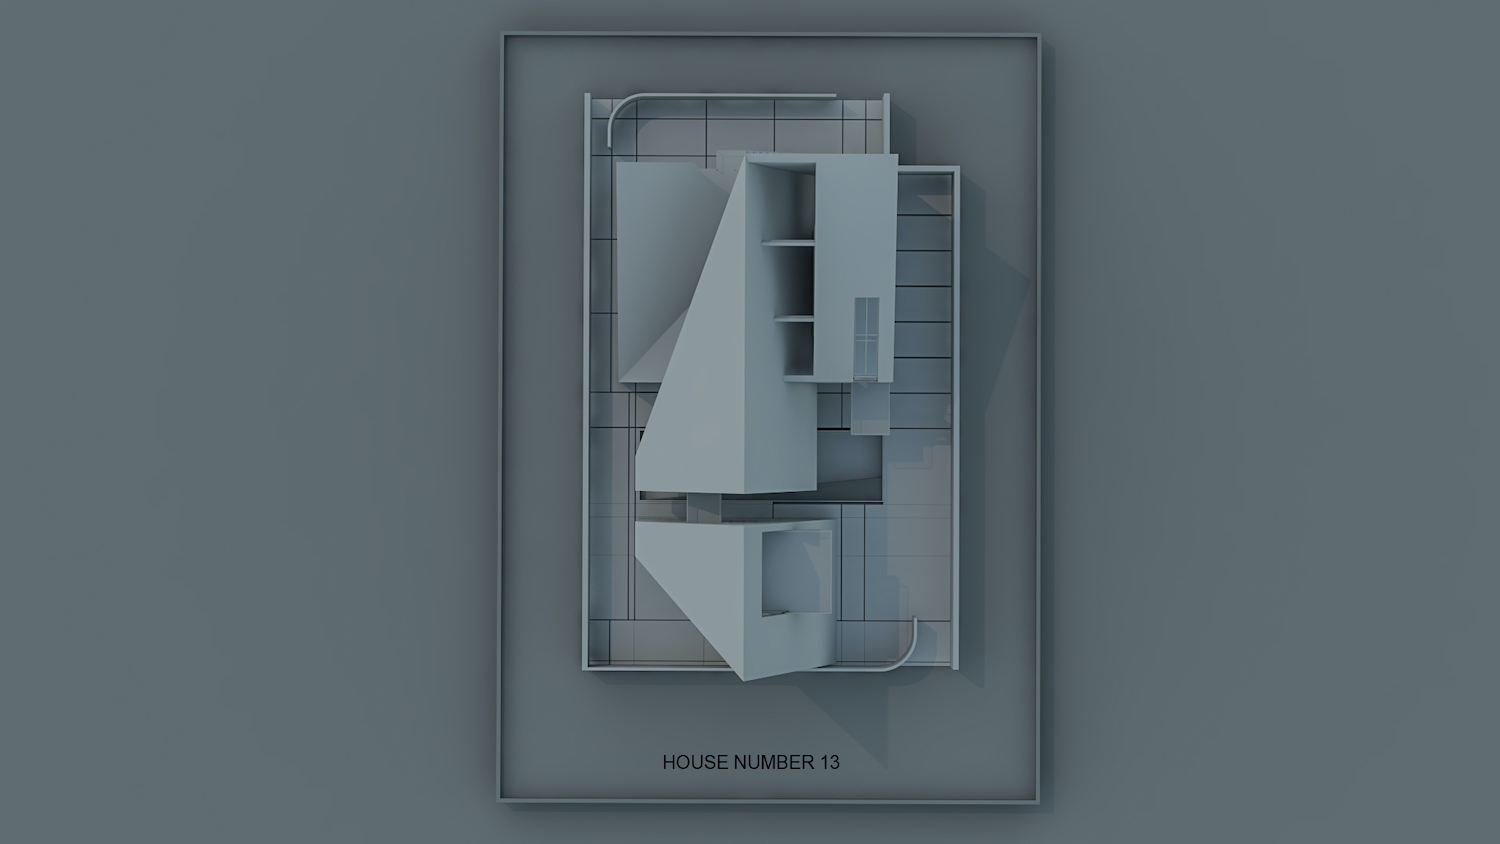 rendering images of house from top view